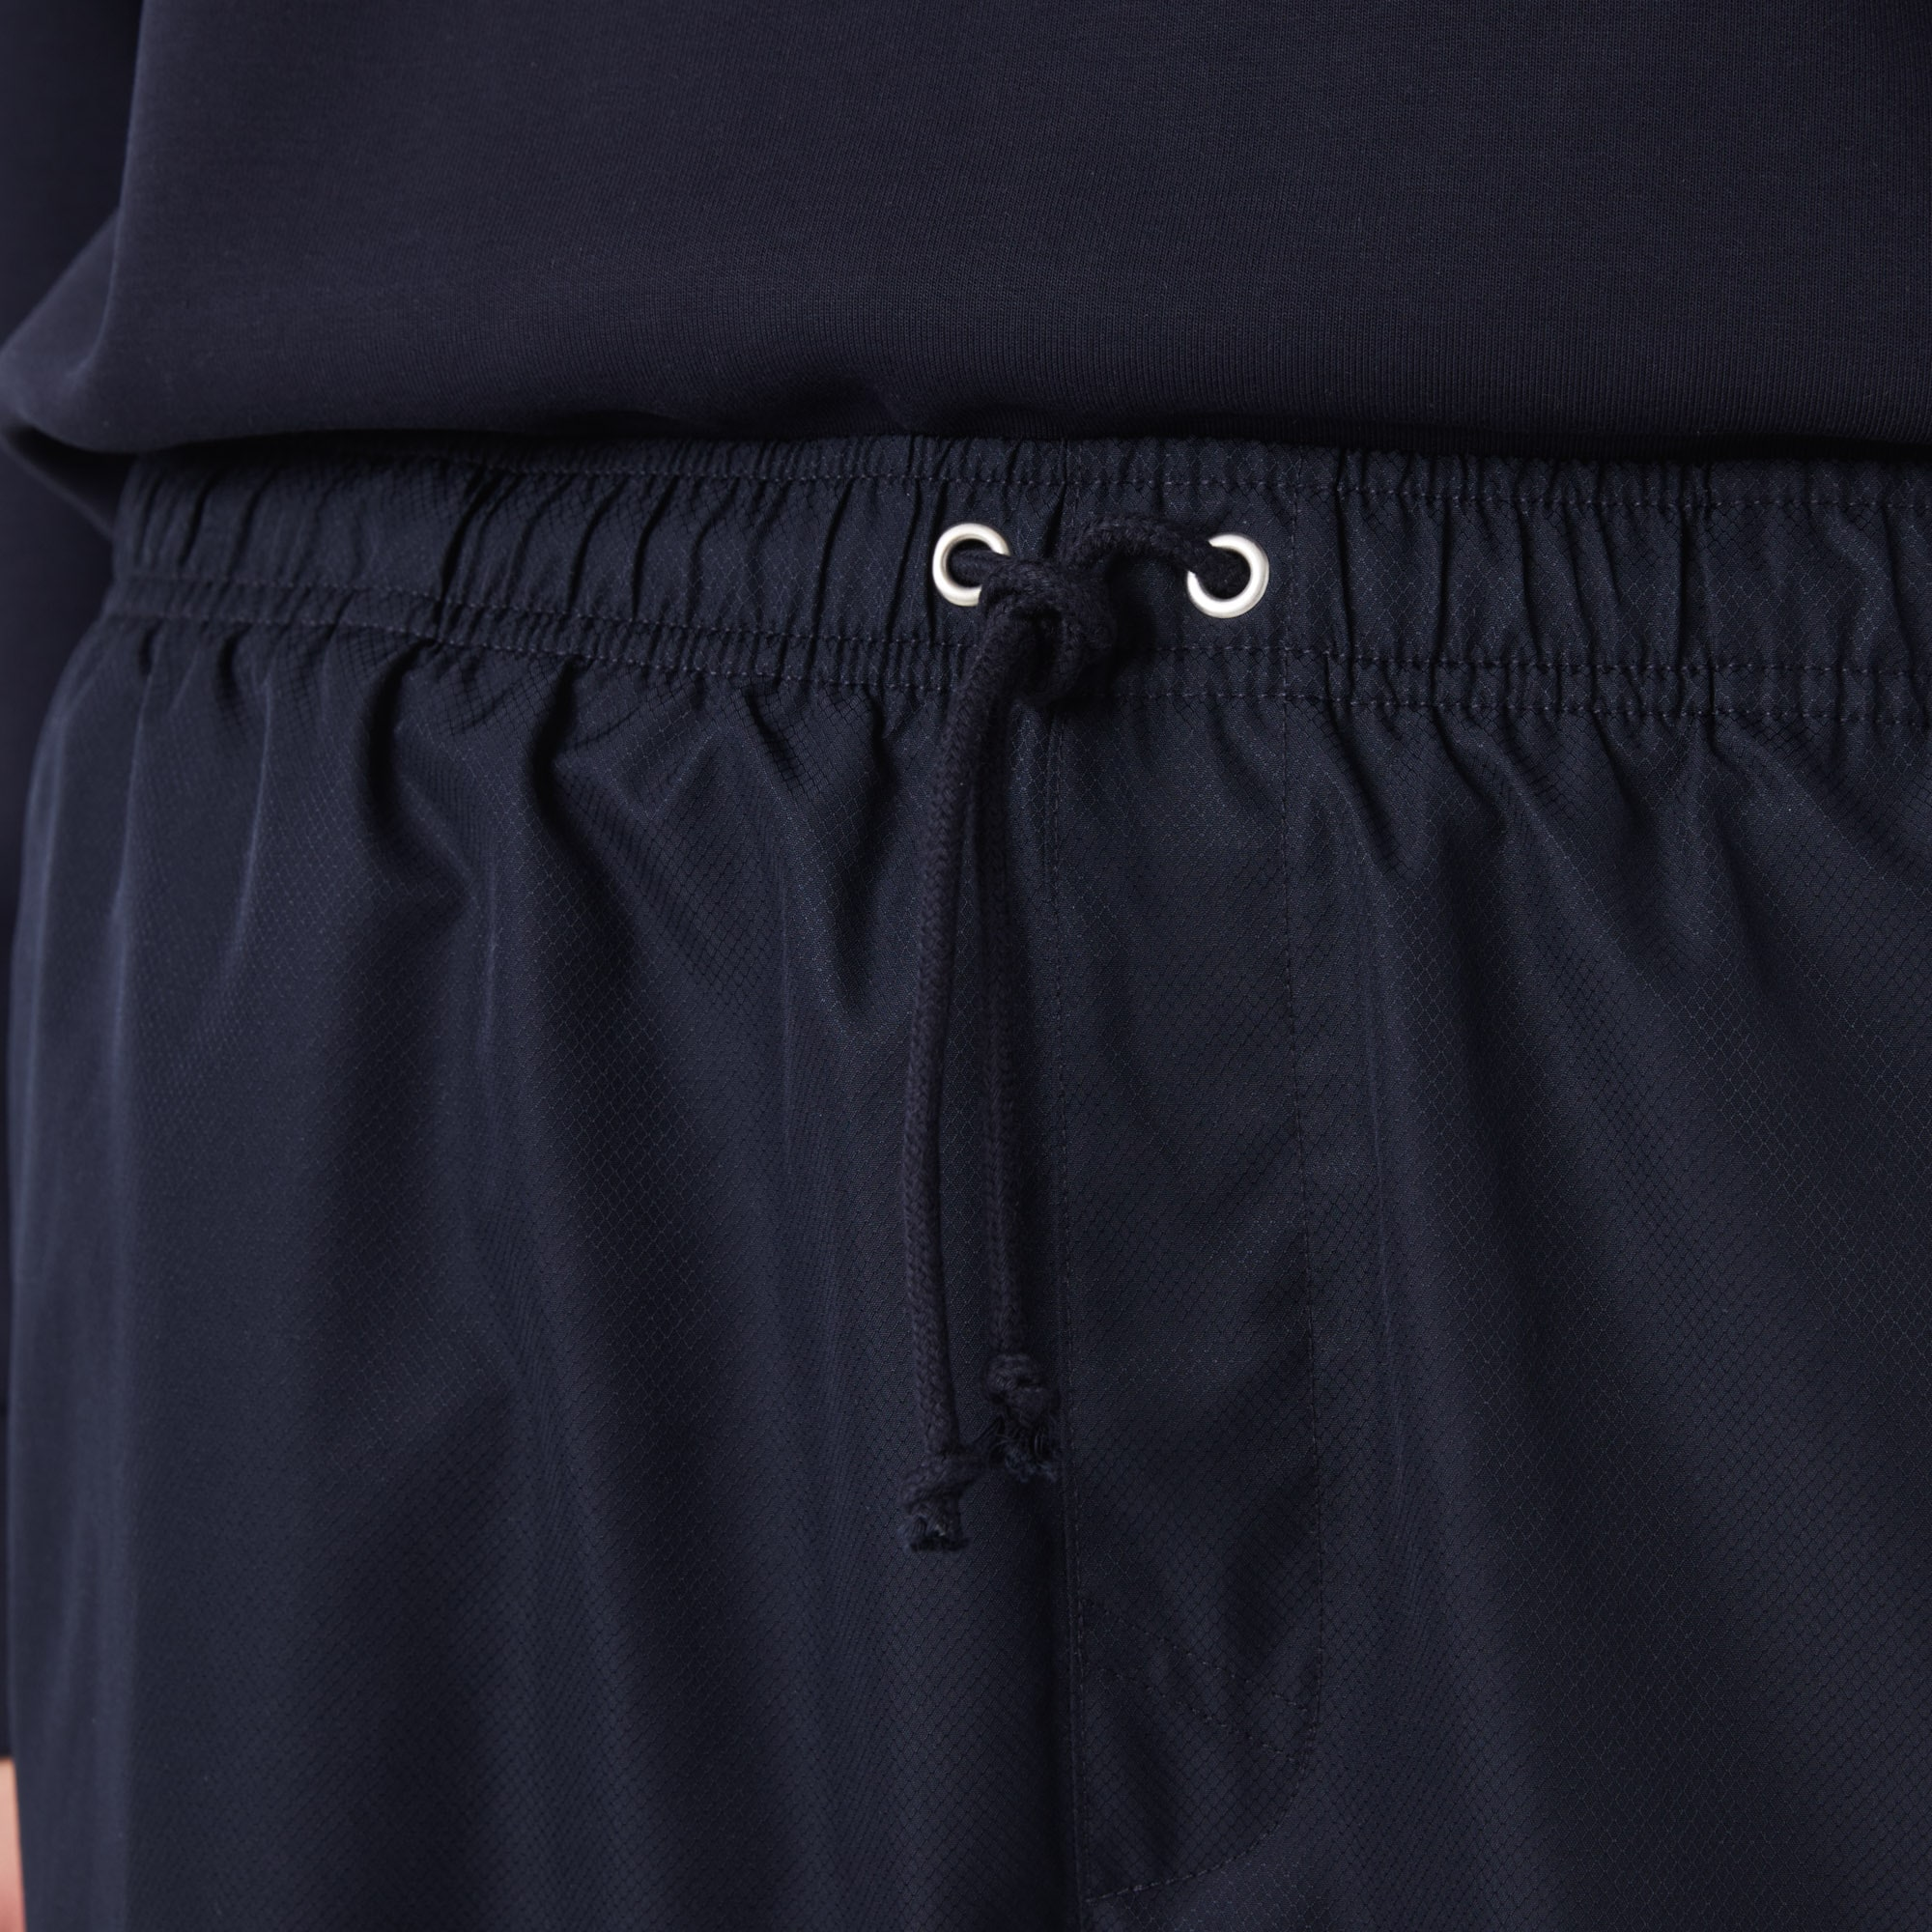 Men's Lacoste SPORT tennis shorts in solid diamond weave taffeta